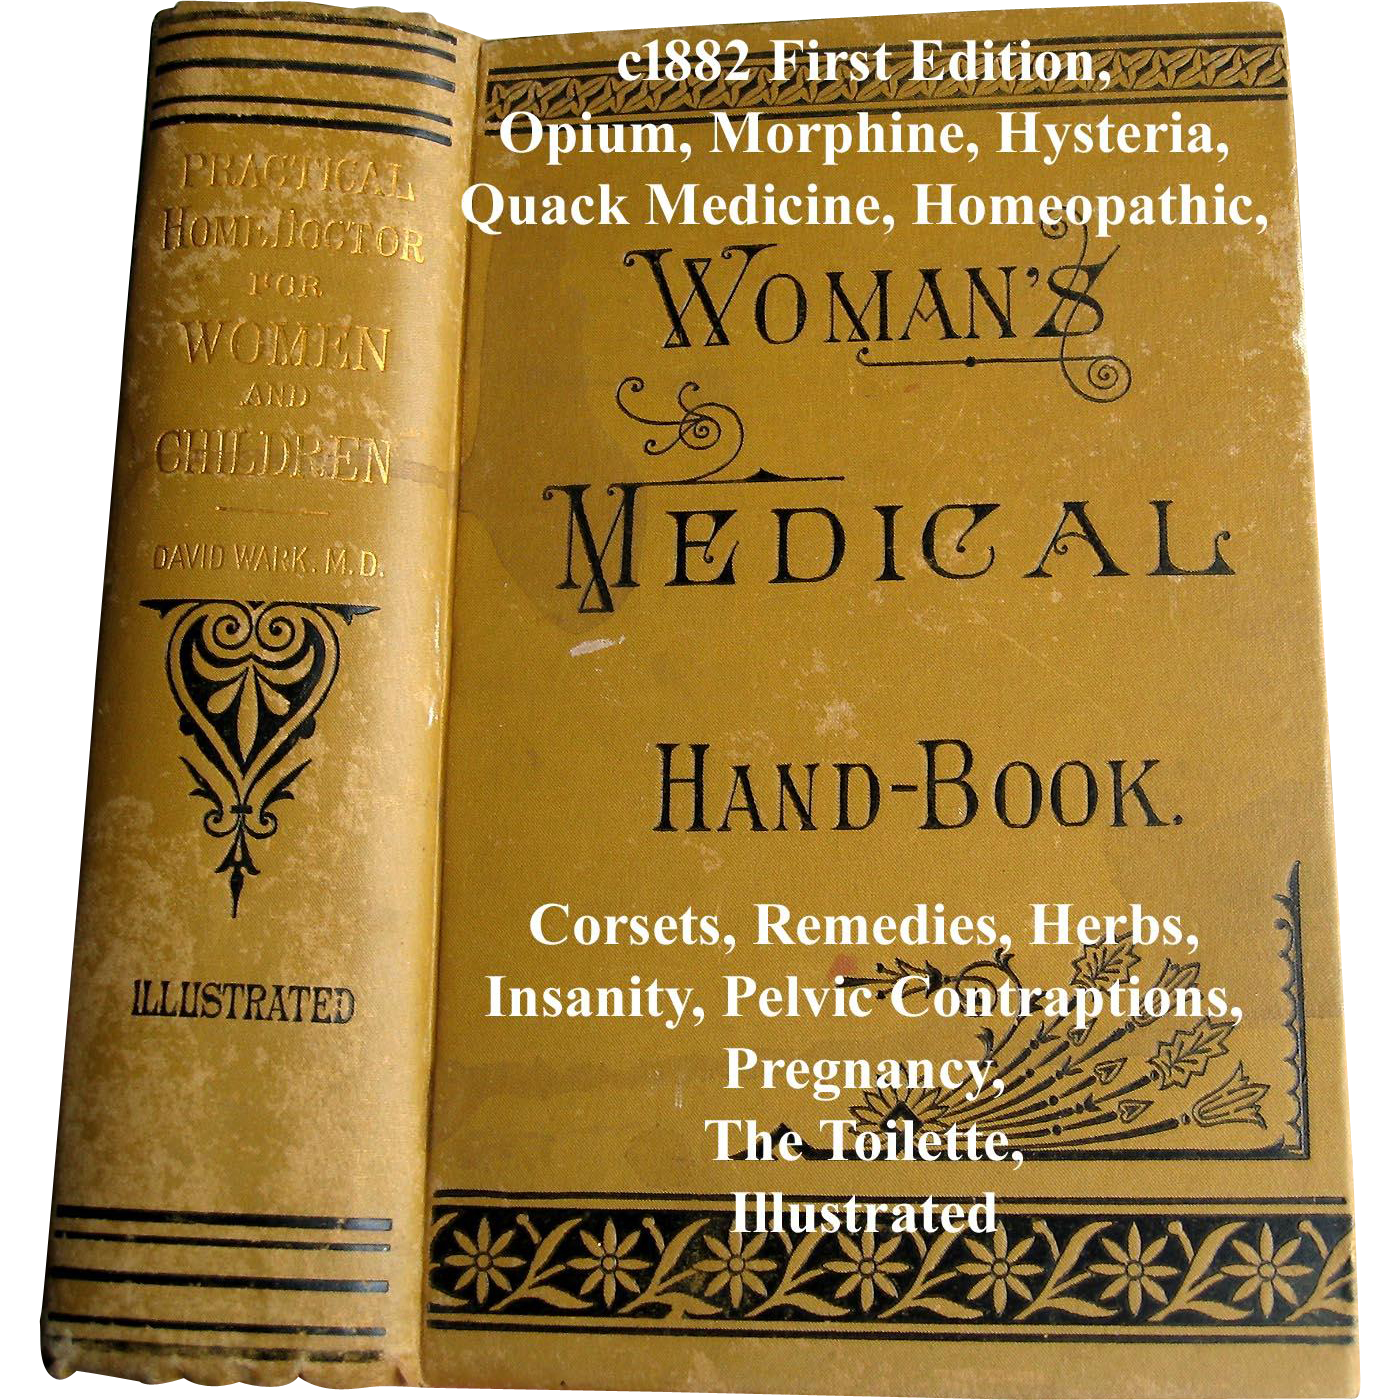 c1882 Womans Medical Hand Book The Practical Home Doctor Book First Edition Corsets Quack Medicine Opium Morphine Hysteria Pregnancy Toilet Pelvic Contraptions Remedies Herbs Homeopathic Drowning Accidents Nervous Cough Insanity